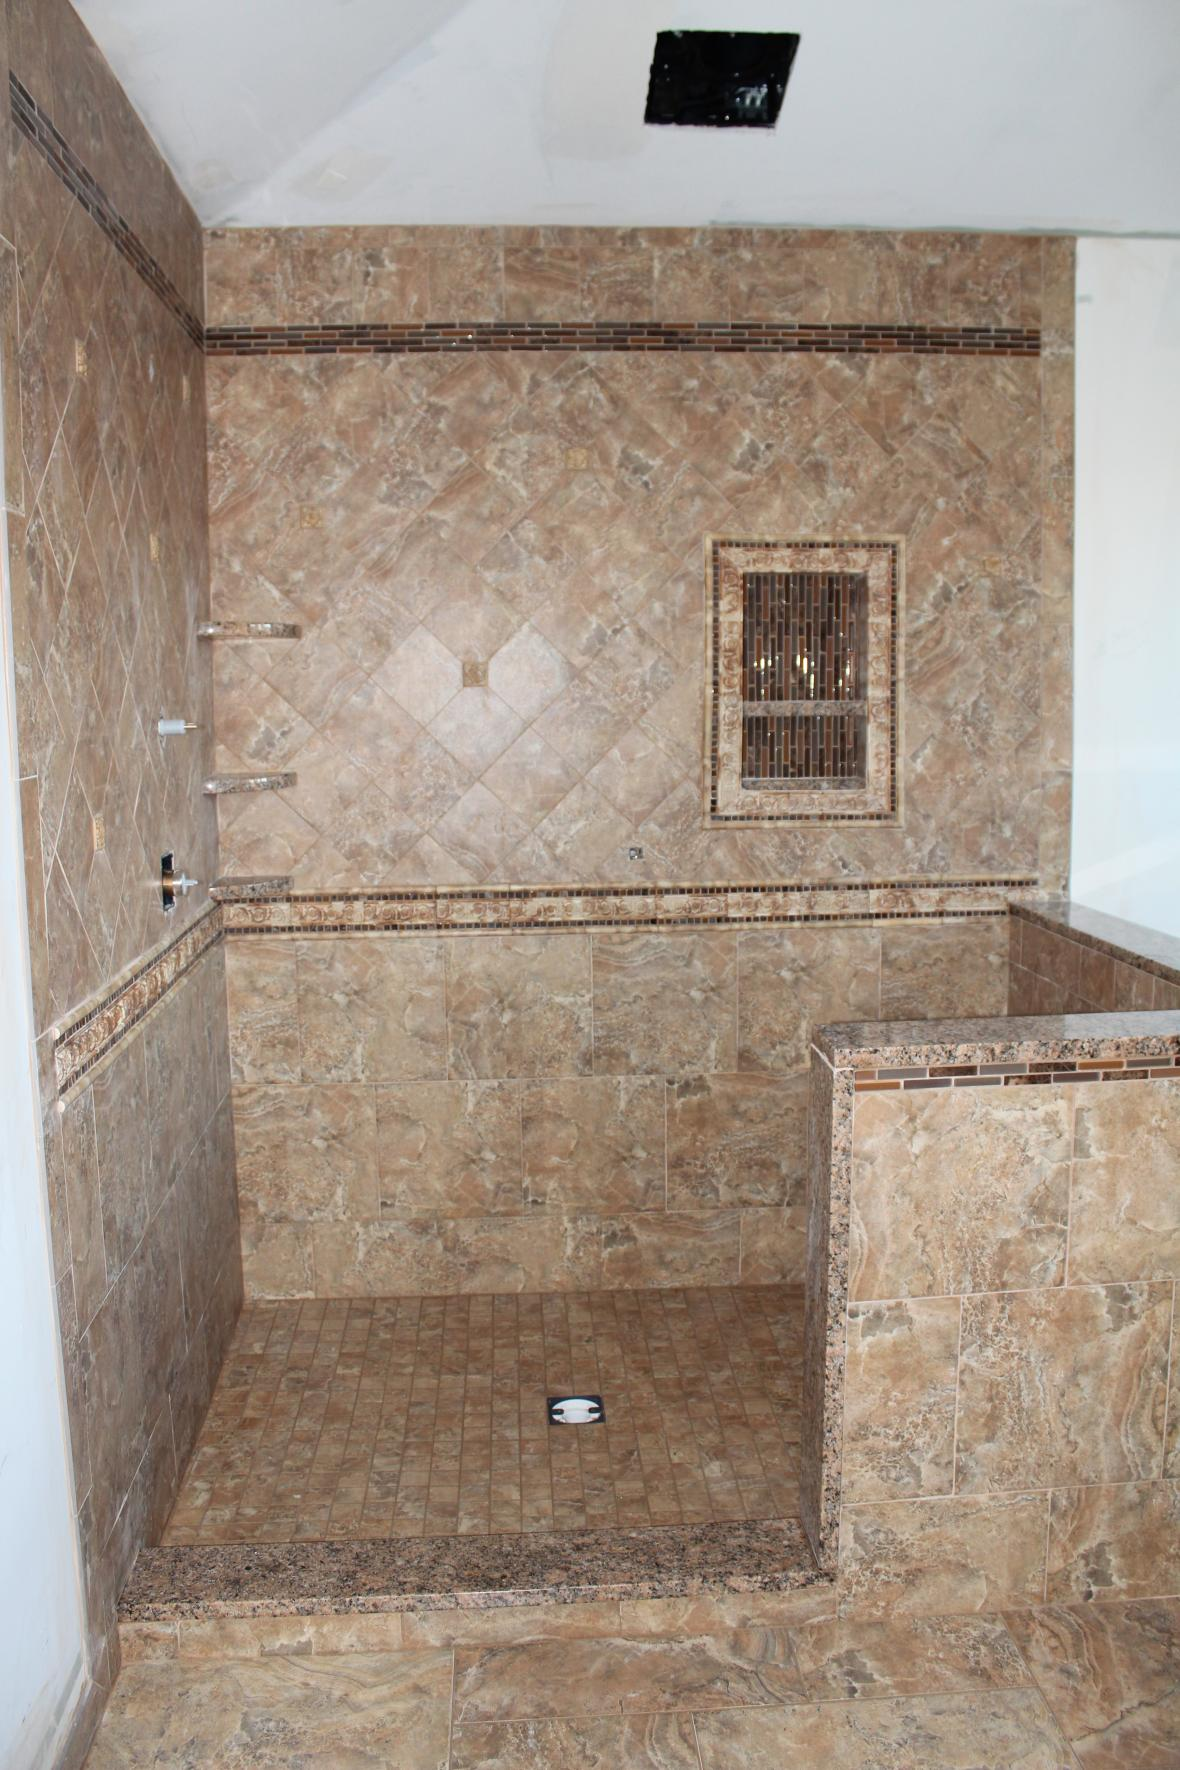 showroom-budget-of-wall-pattern-uk-with-planner-decorative-kitchen-latest-shower-bathtub-fully-modern-white-black-flooring-contemporary-decorating-tiled-bathrooms-styles